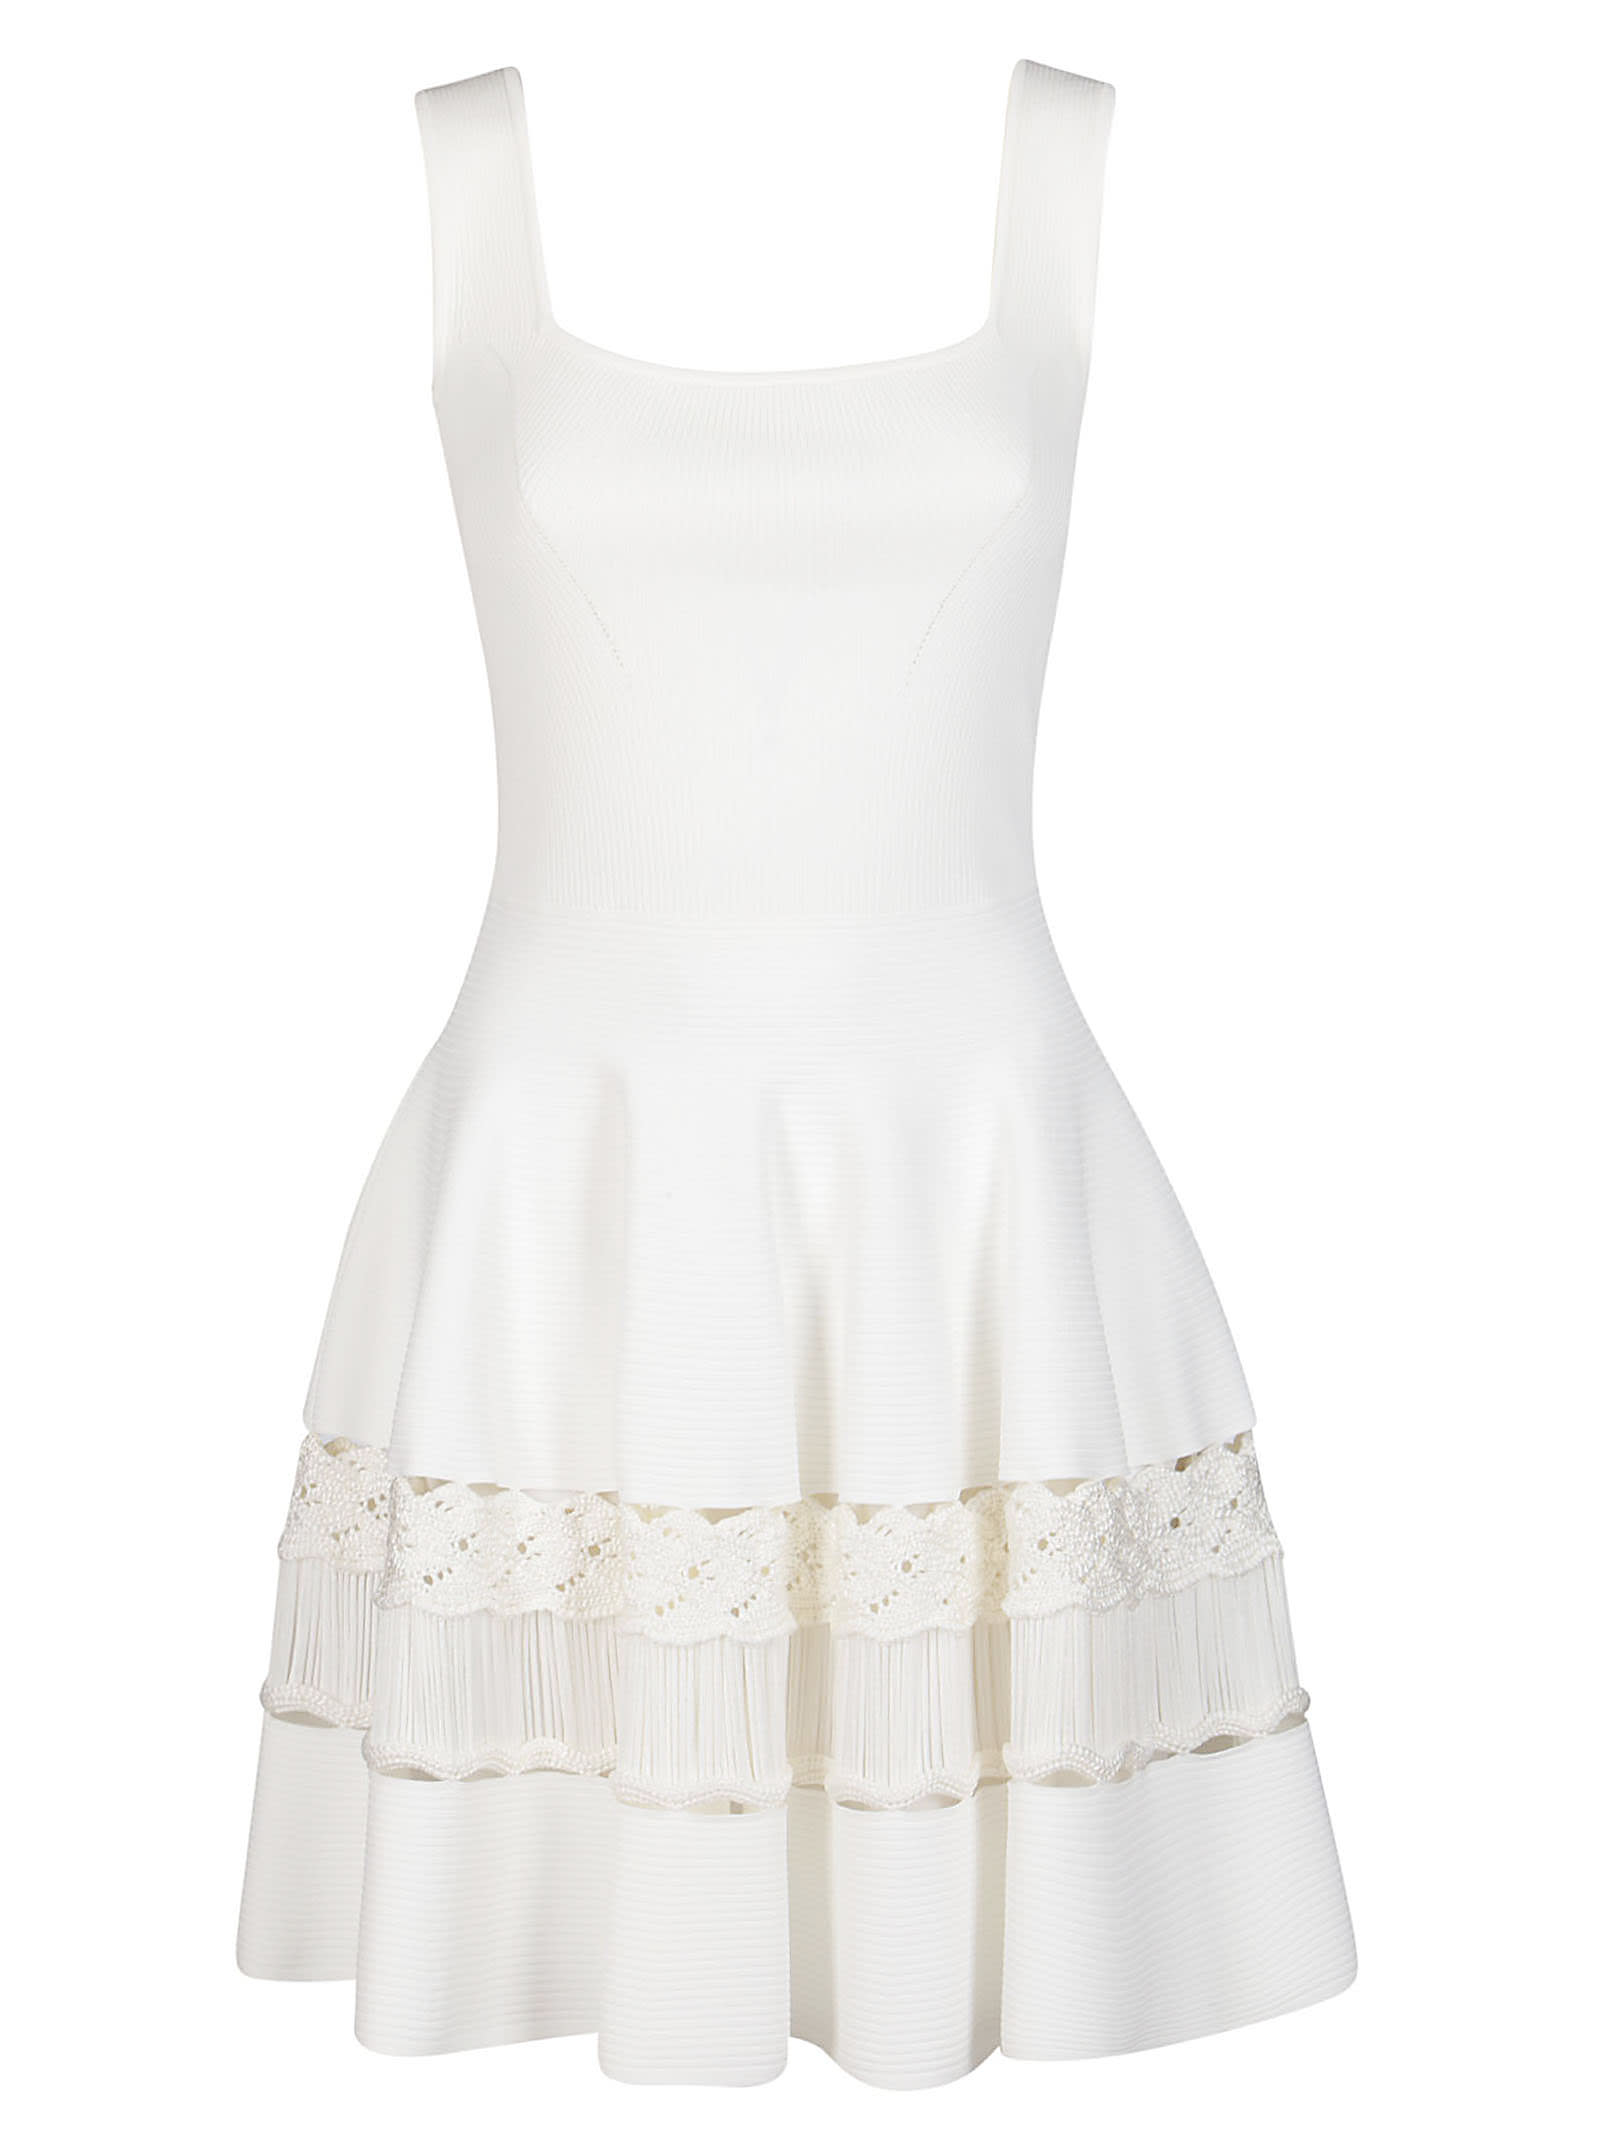 Buy Alexander McQueen White Viscose Blend Dress online, shop Alexander McQueen with free shipping